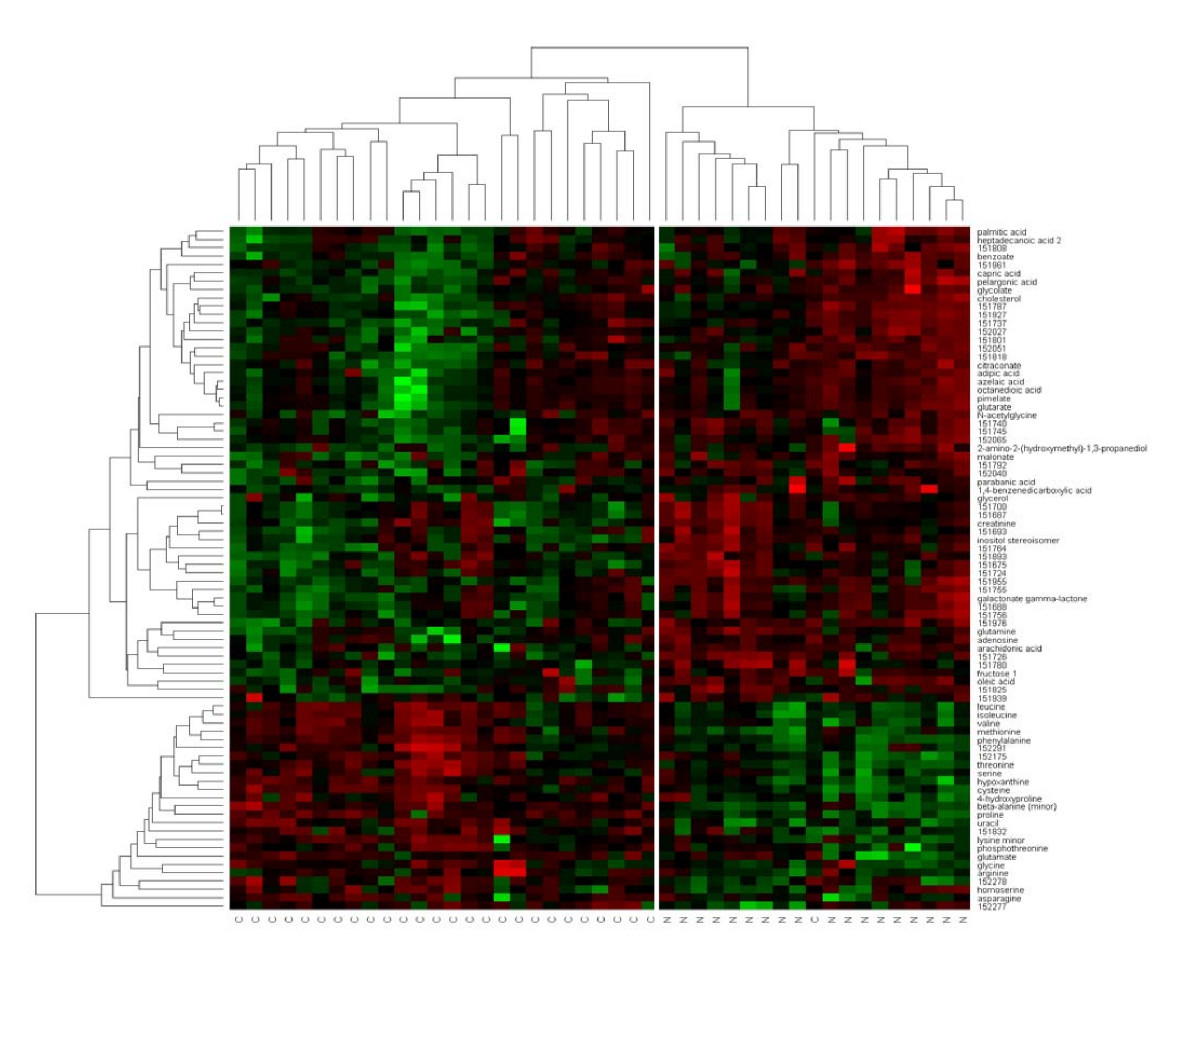 http://static-content.springer.com/image/art%3A10.1186%2F1476-4598-7-72/MediaObjects/12943_2007_Article_363_Fig5_HTML.jpg